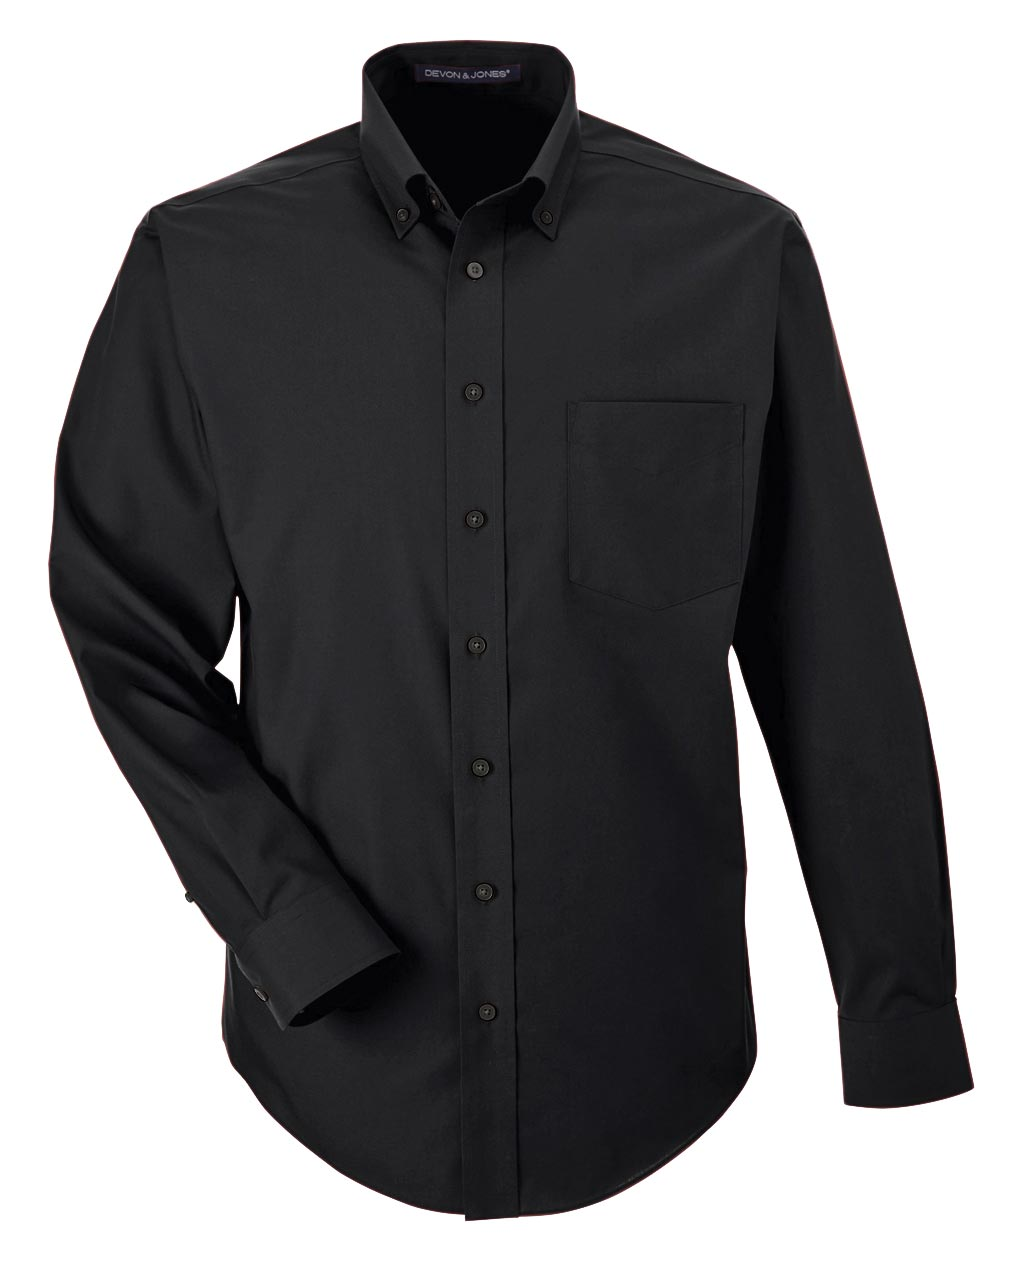 Mens Performance Solid Broadcloth Dress Shirt